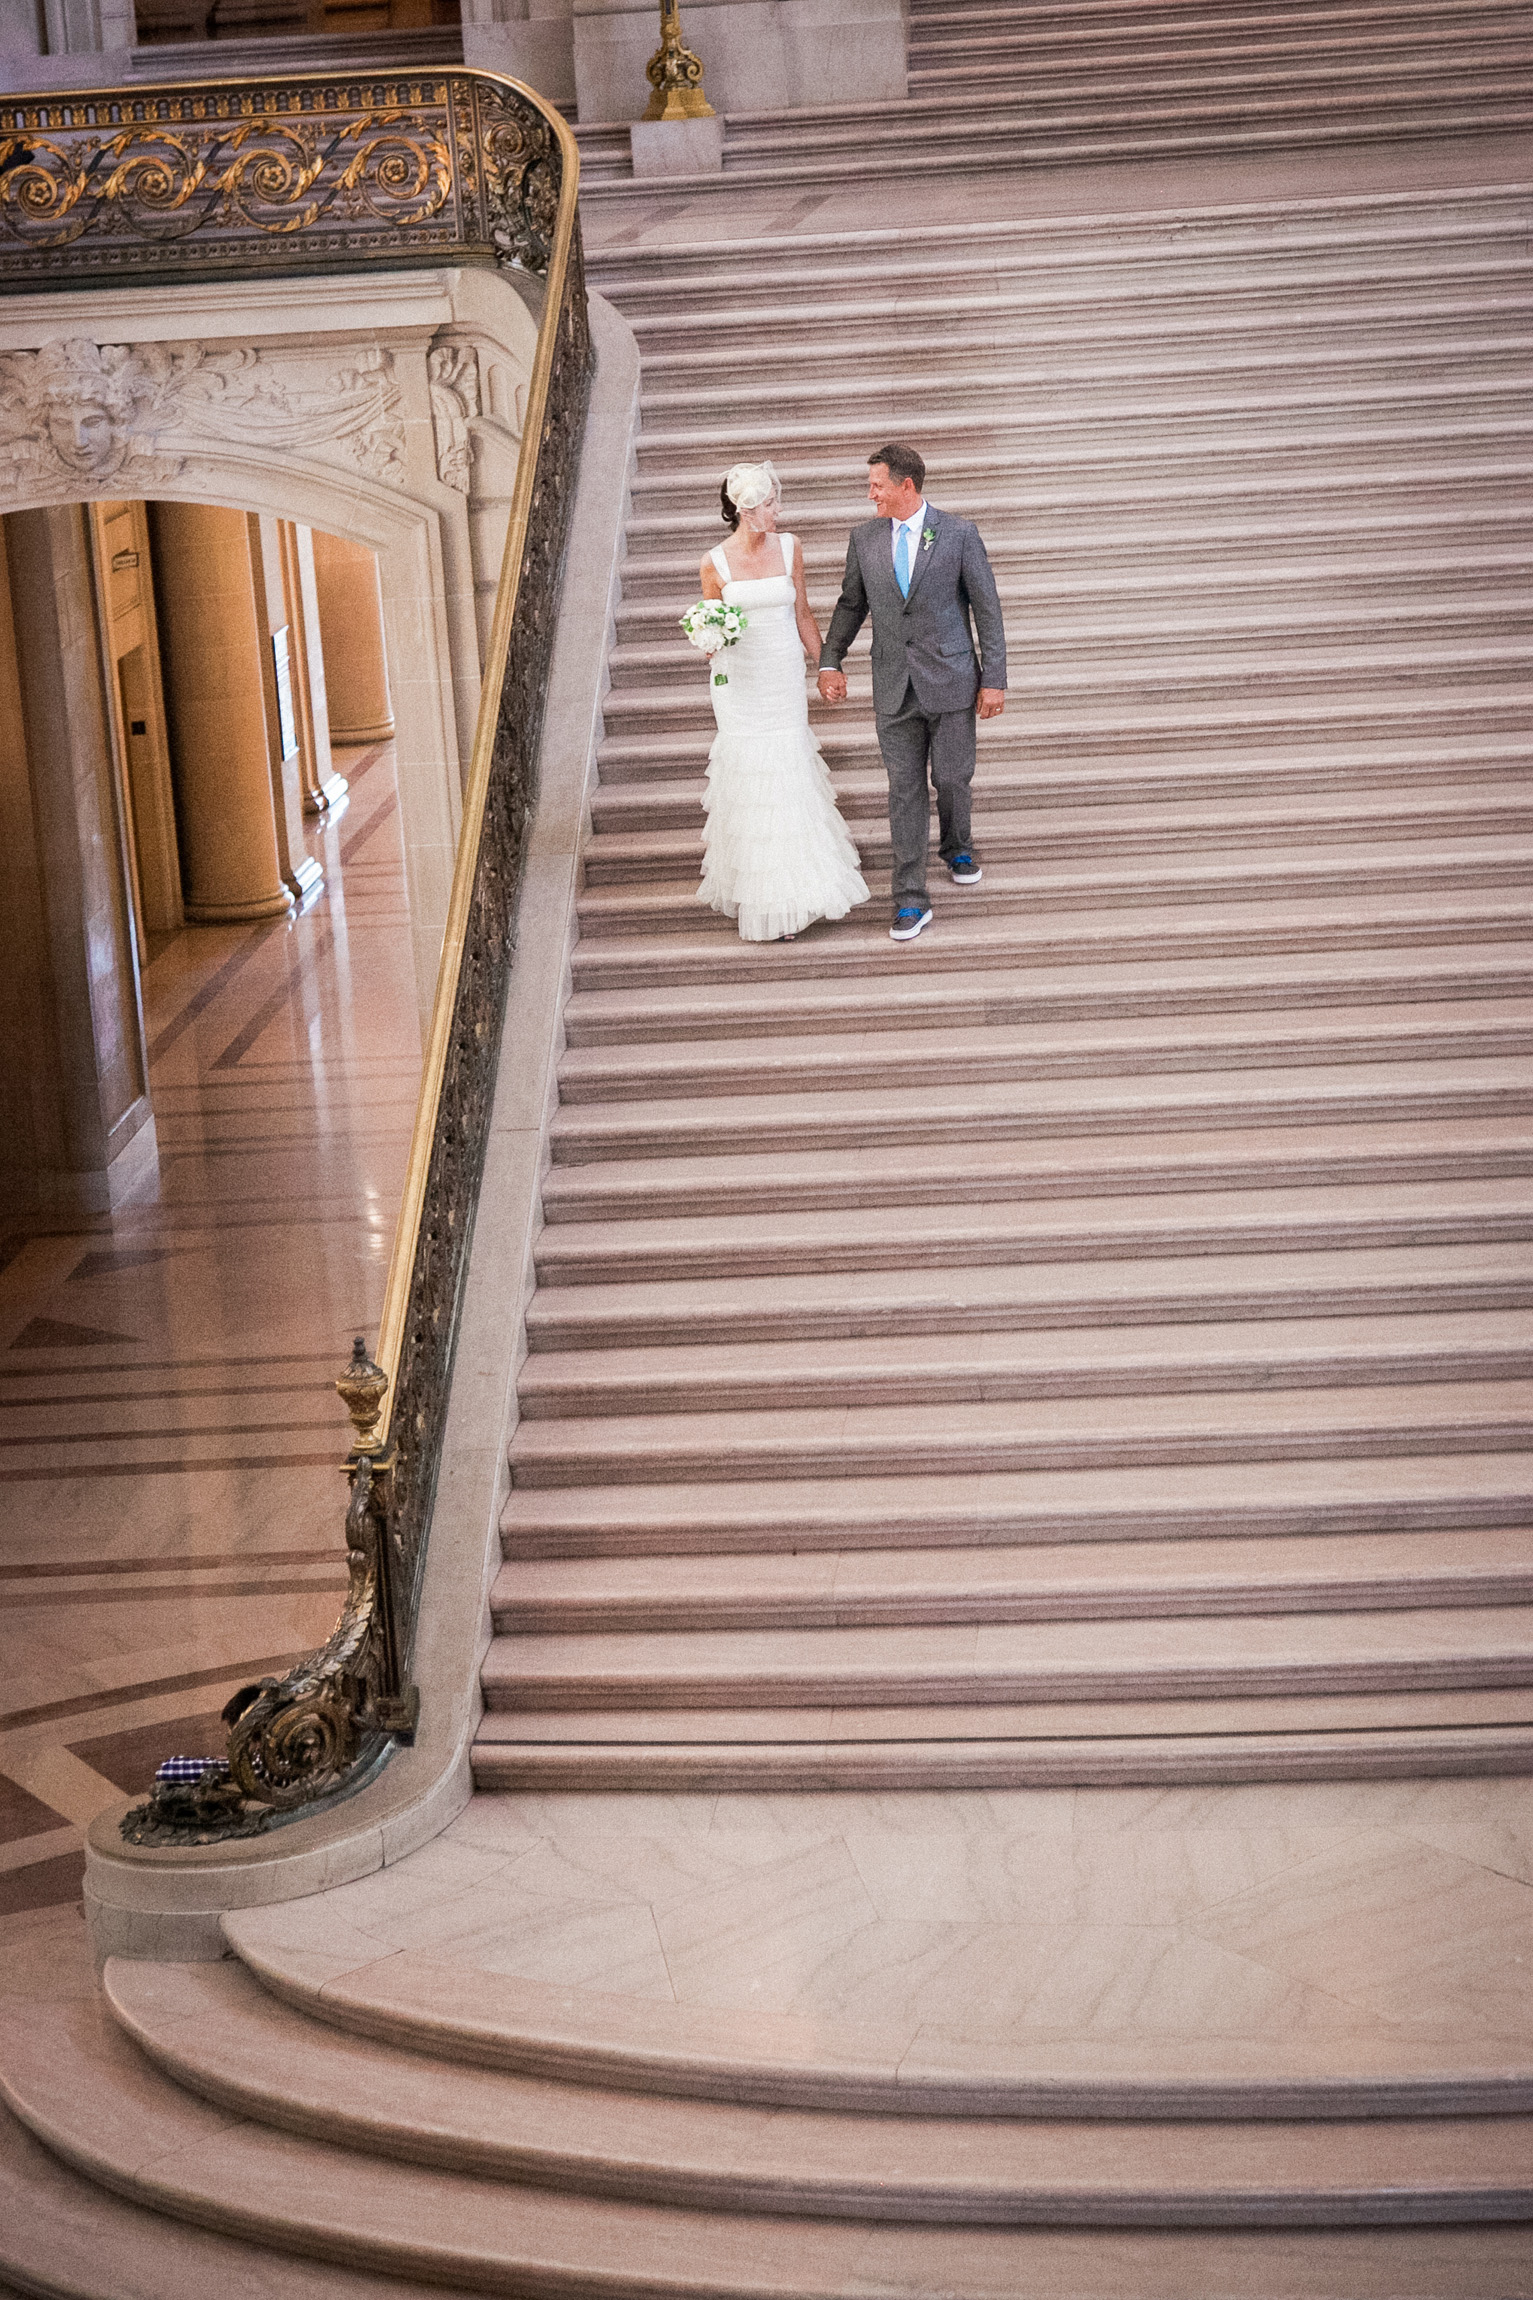 015_janaeshieldsphotography_sanfrancisco_cityhall_weddings.jpg